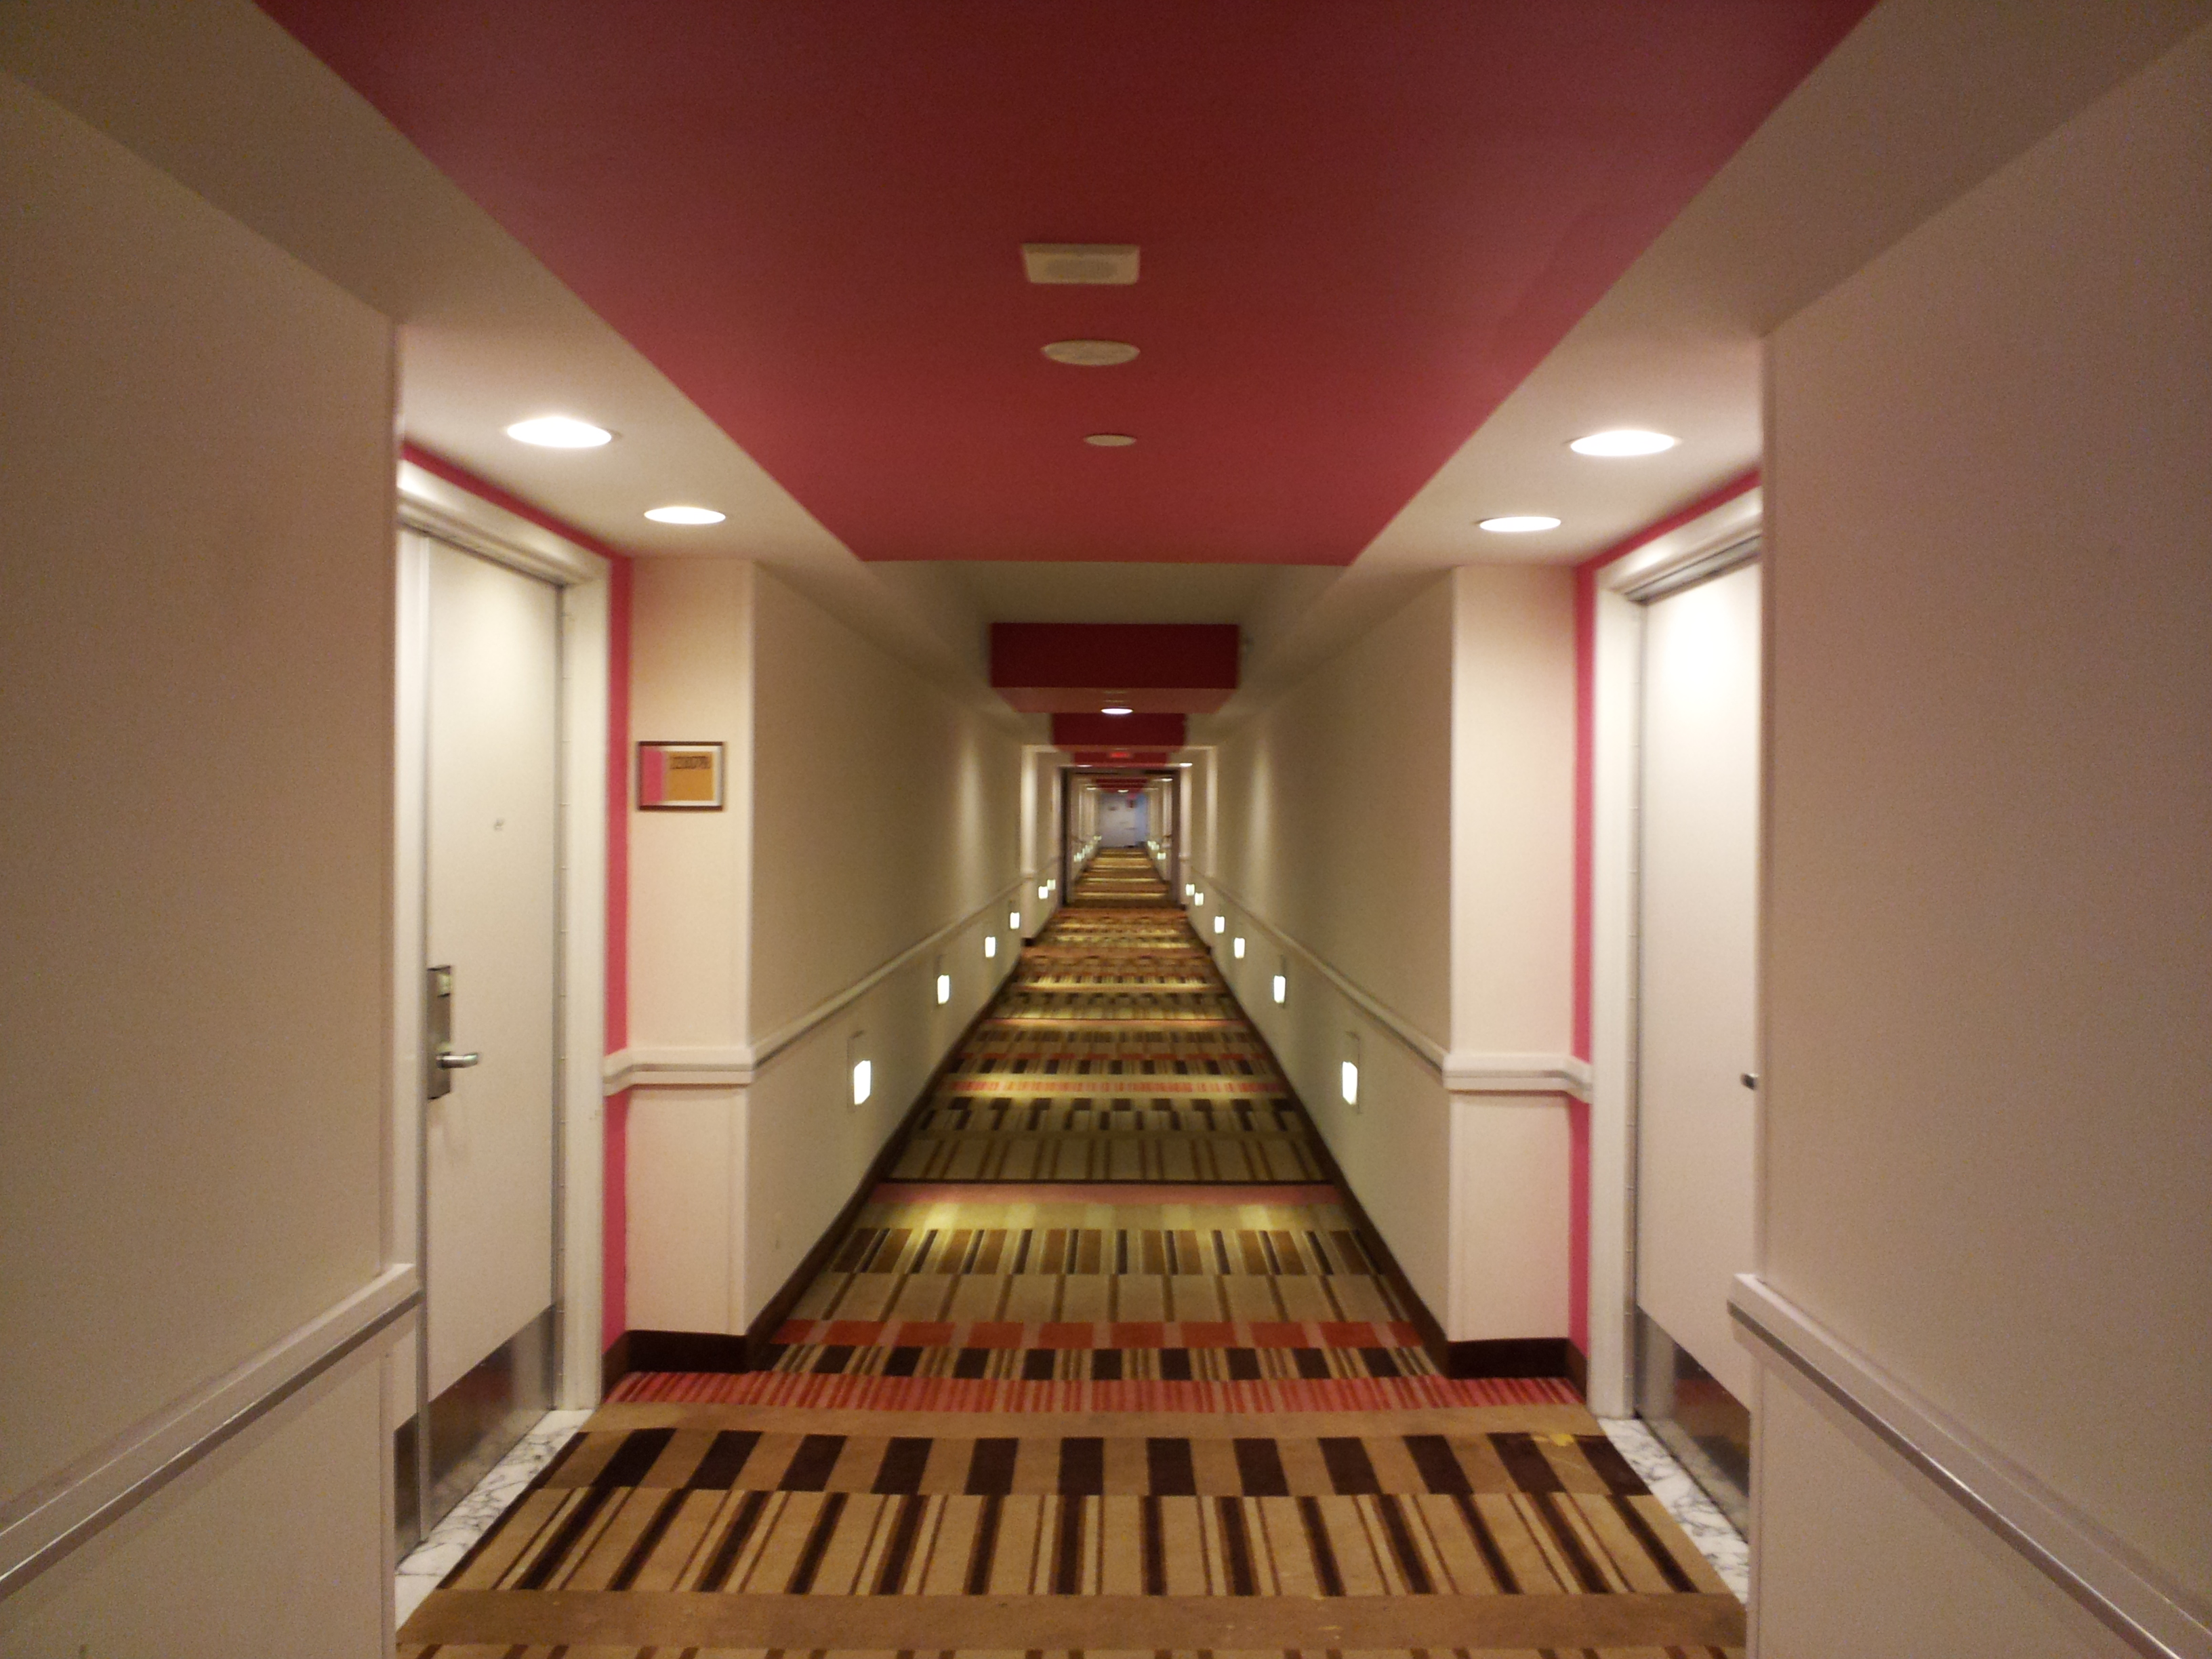 Cool hotel hallways images galleries for Hallway photos